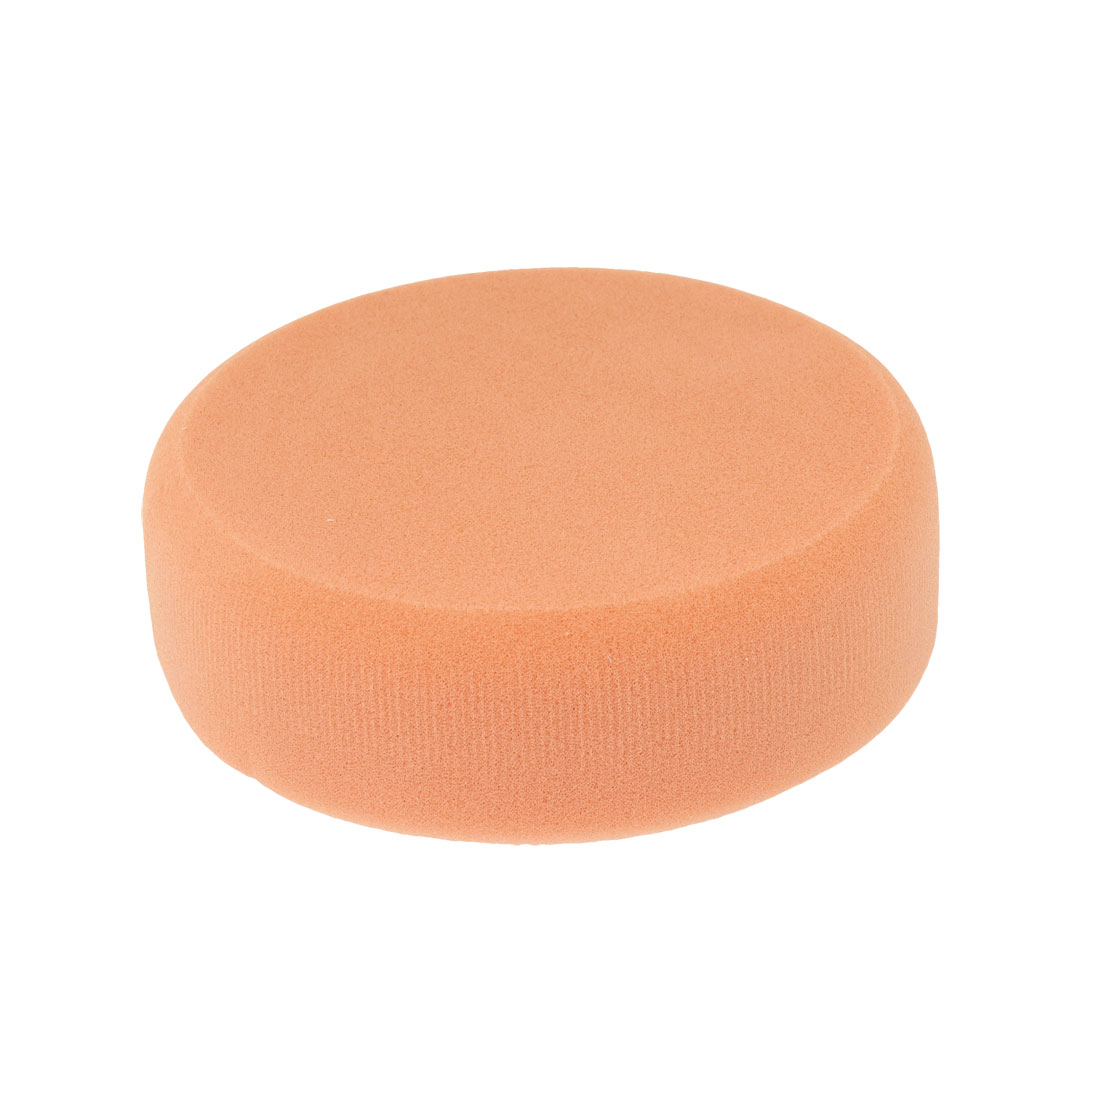 "Automobile Car Sponge Polishing Ball Buffing Pad Polisher 5.5"" Dia Orange Beige"